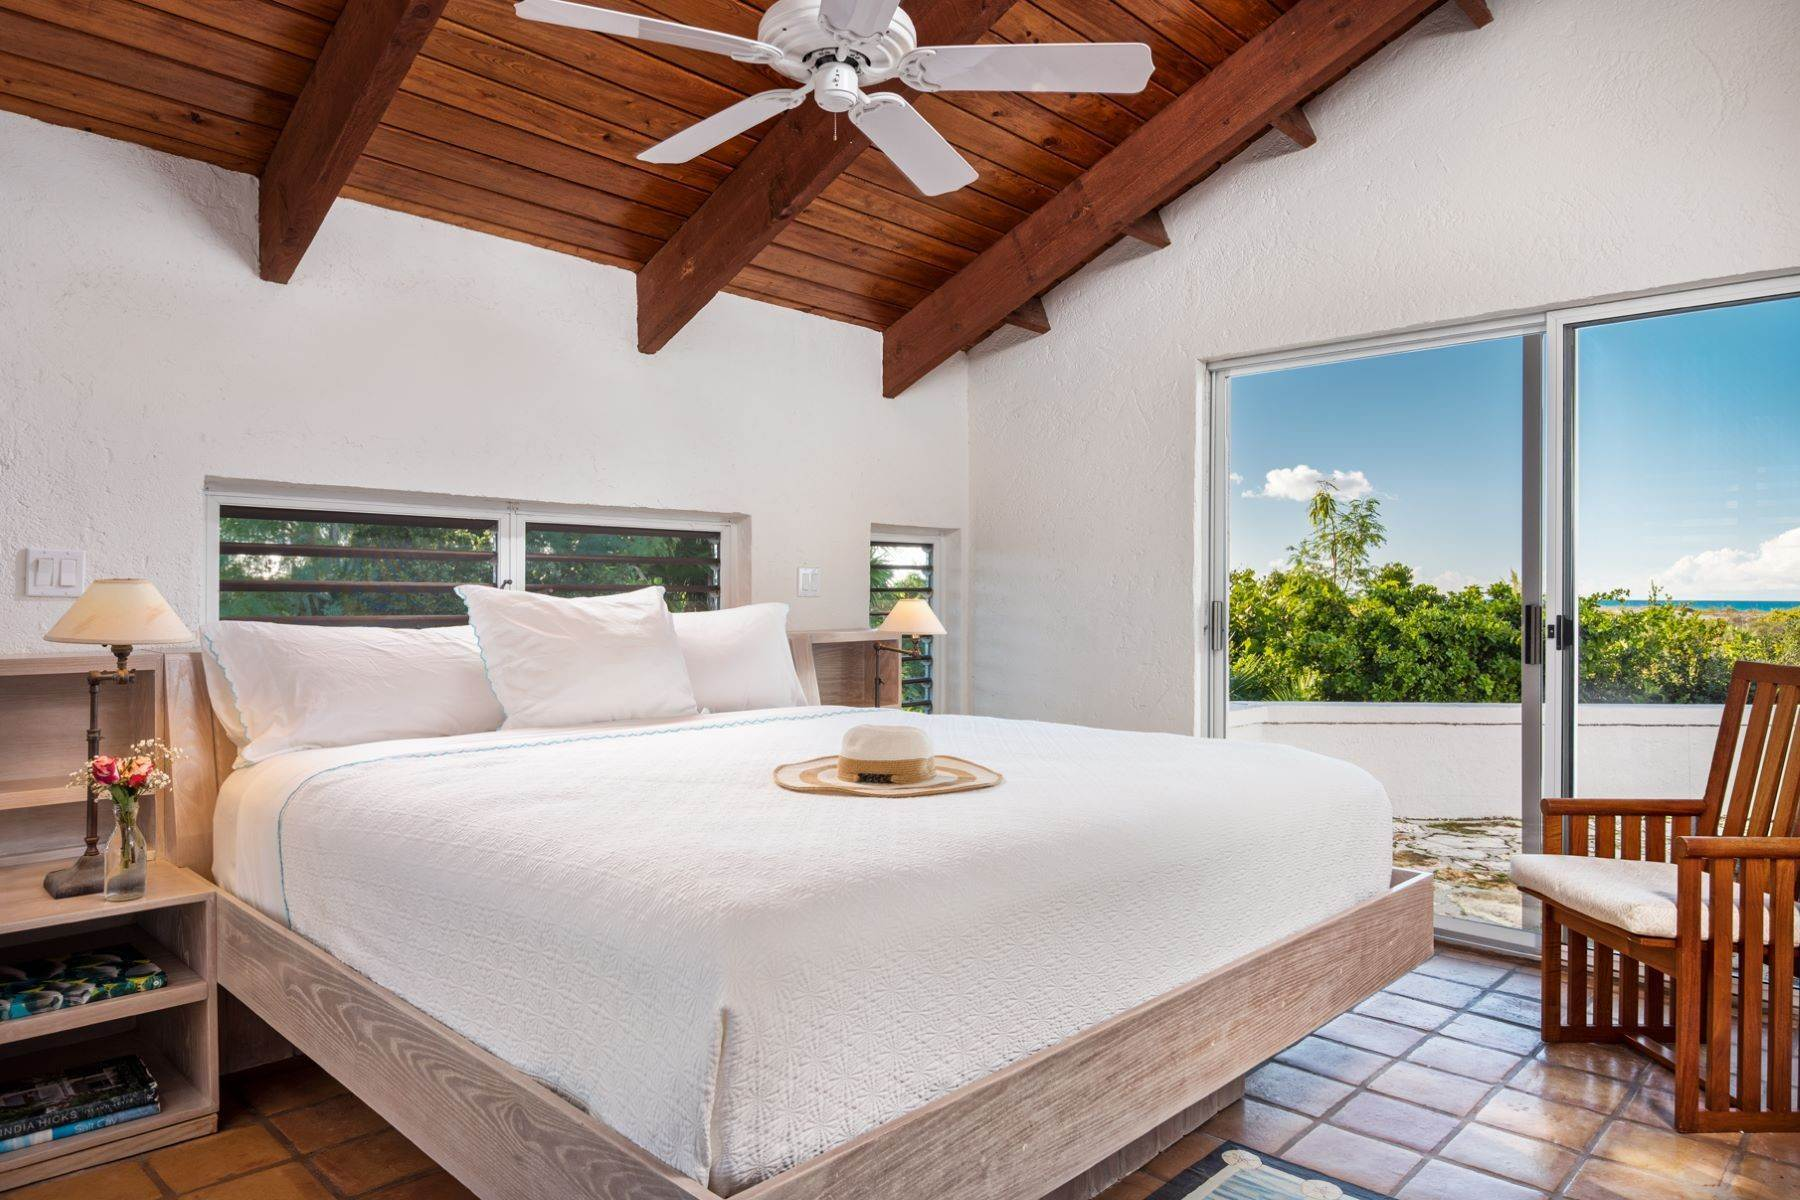 17. Single Family Homes for Sale at Casuarinas Cottage Pine Cay Pine Cay, Pine Cay TCI BWI Turks And Caicos Islands